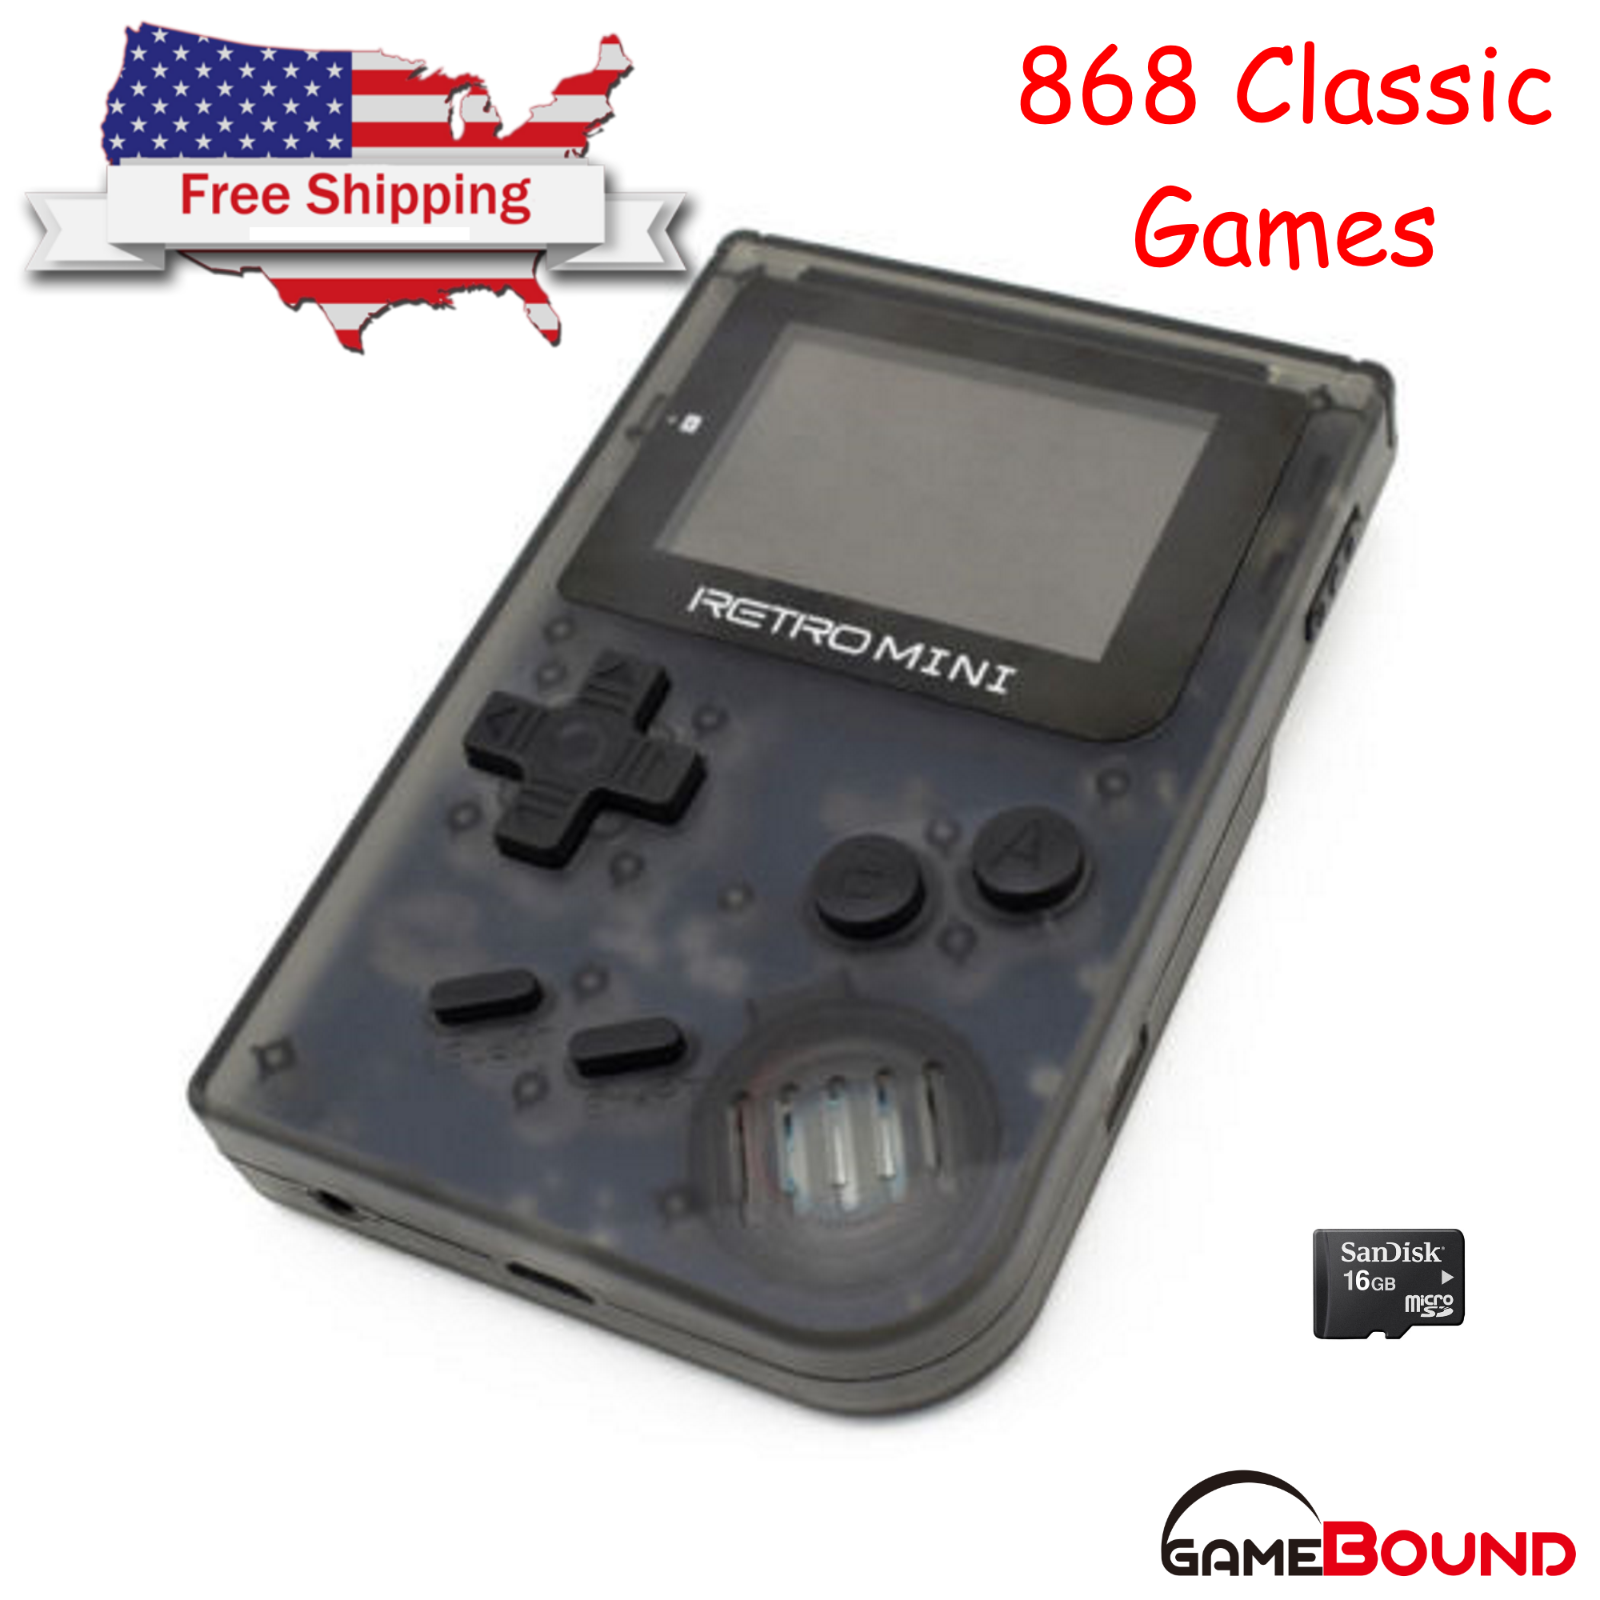 Handheld Gaming Systems: GBA Retro Mini